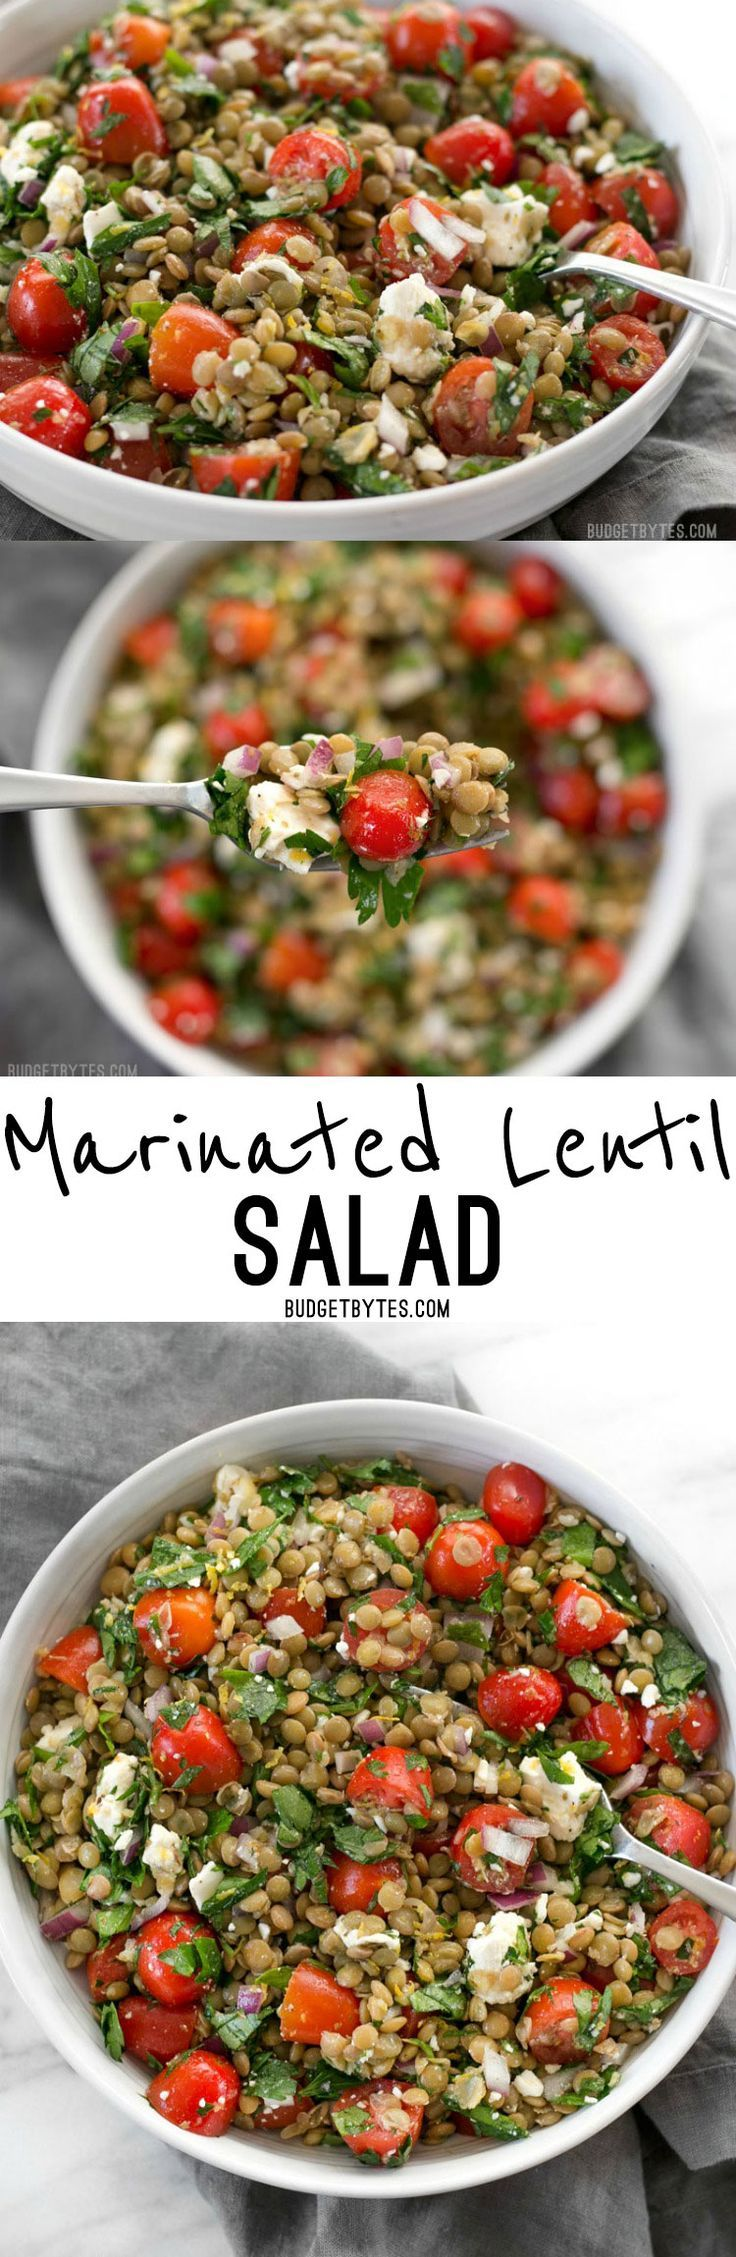 Marinated Lentil Salad is bright and flavorful, and infused with bold flavors like garlic and lemon. /budgetbytes/